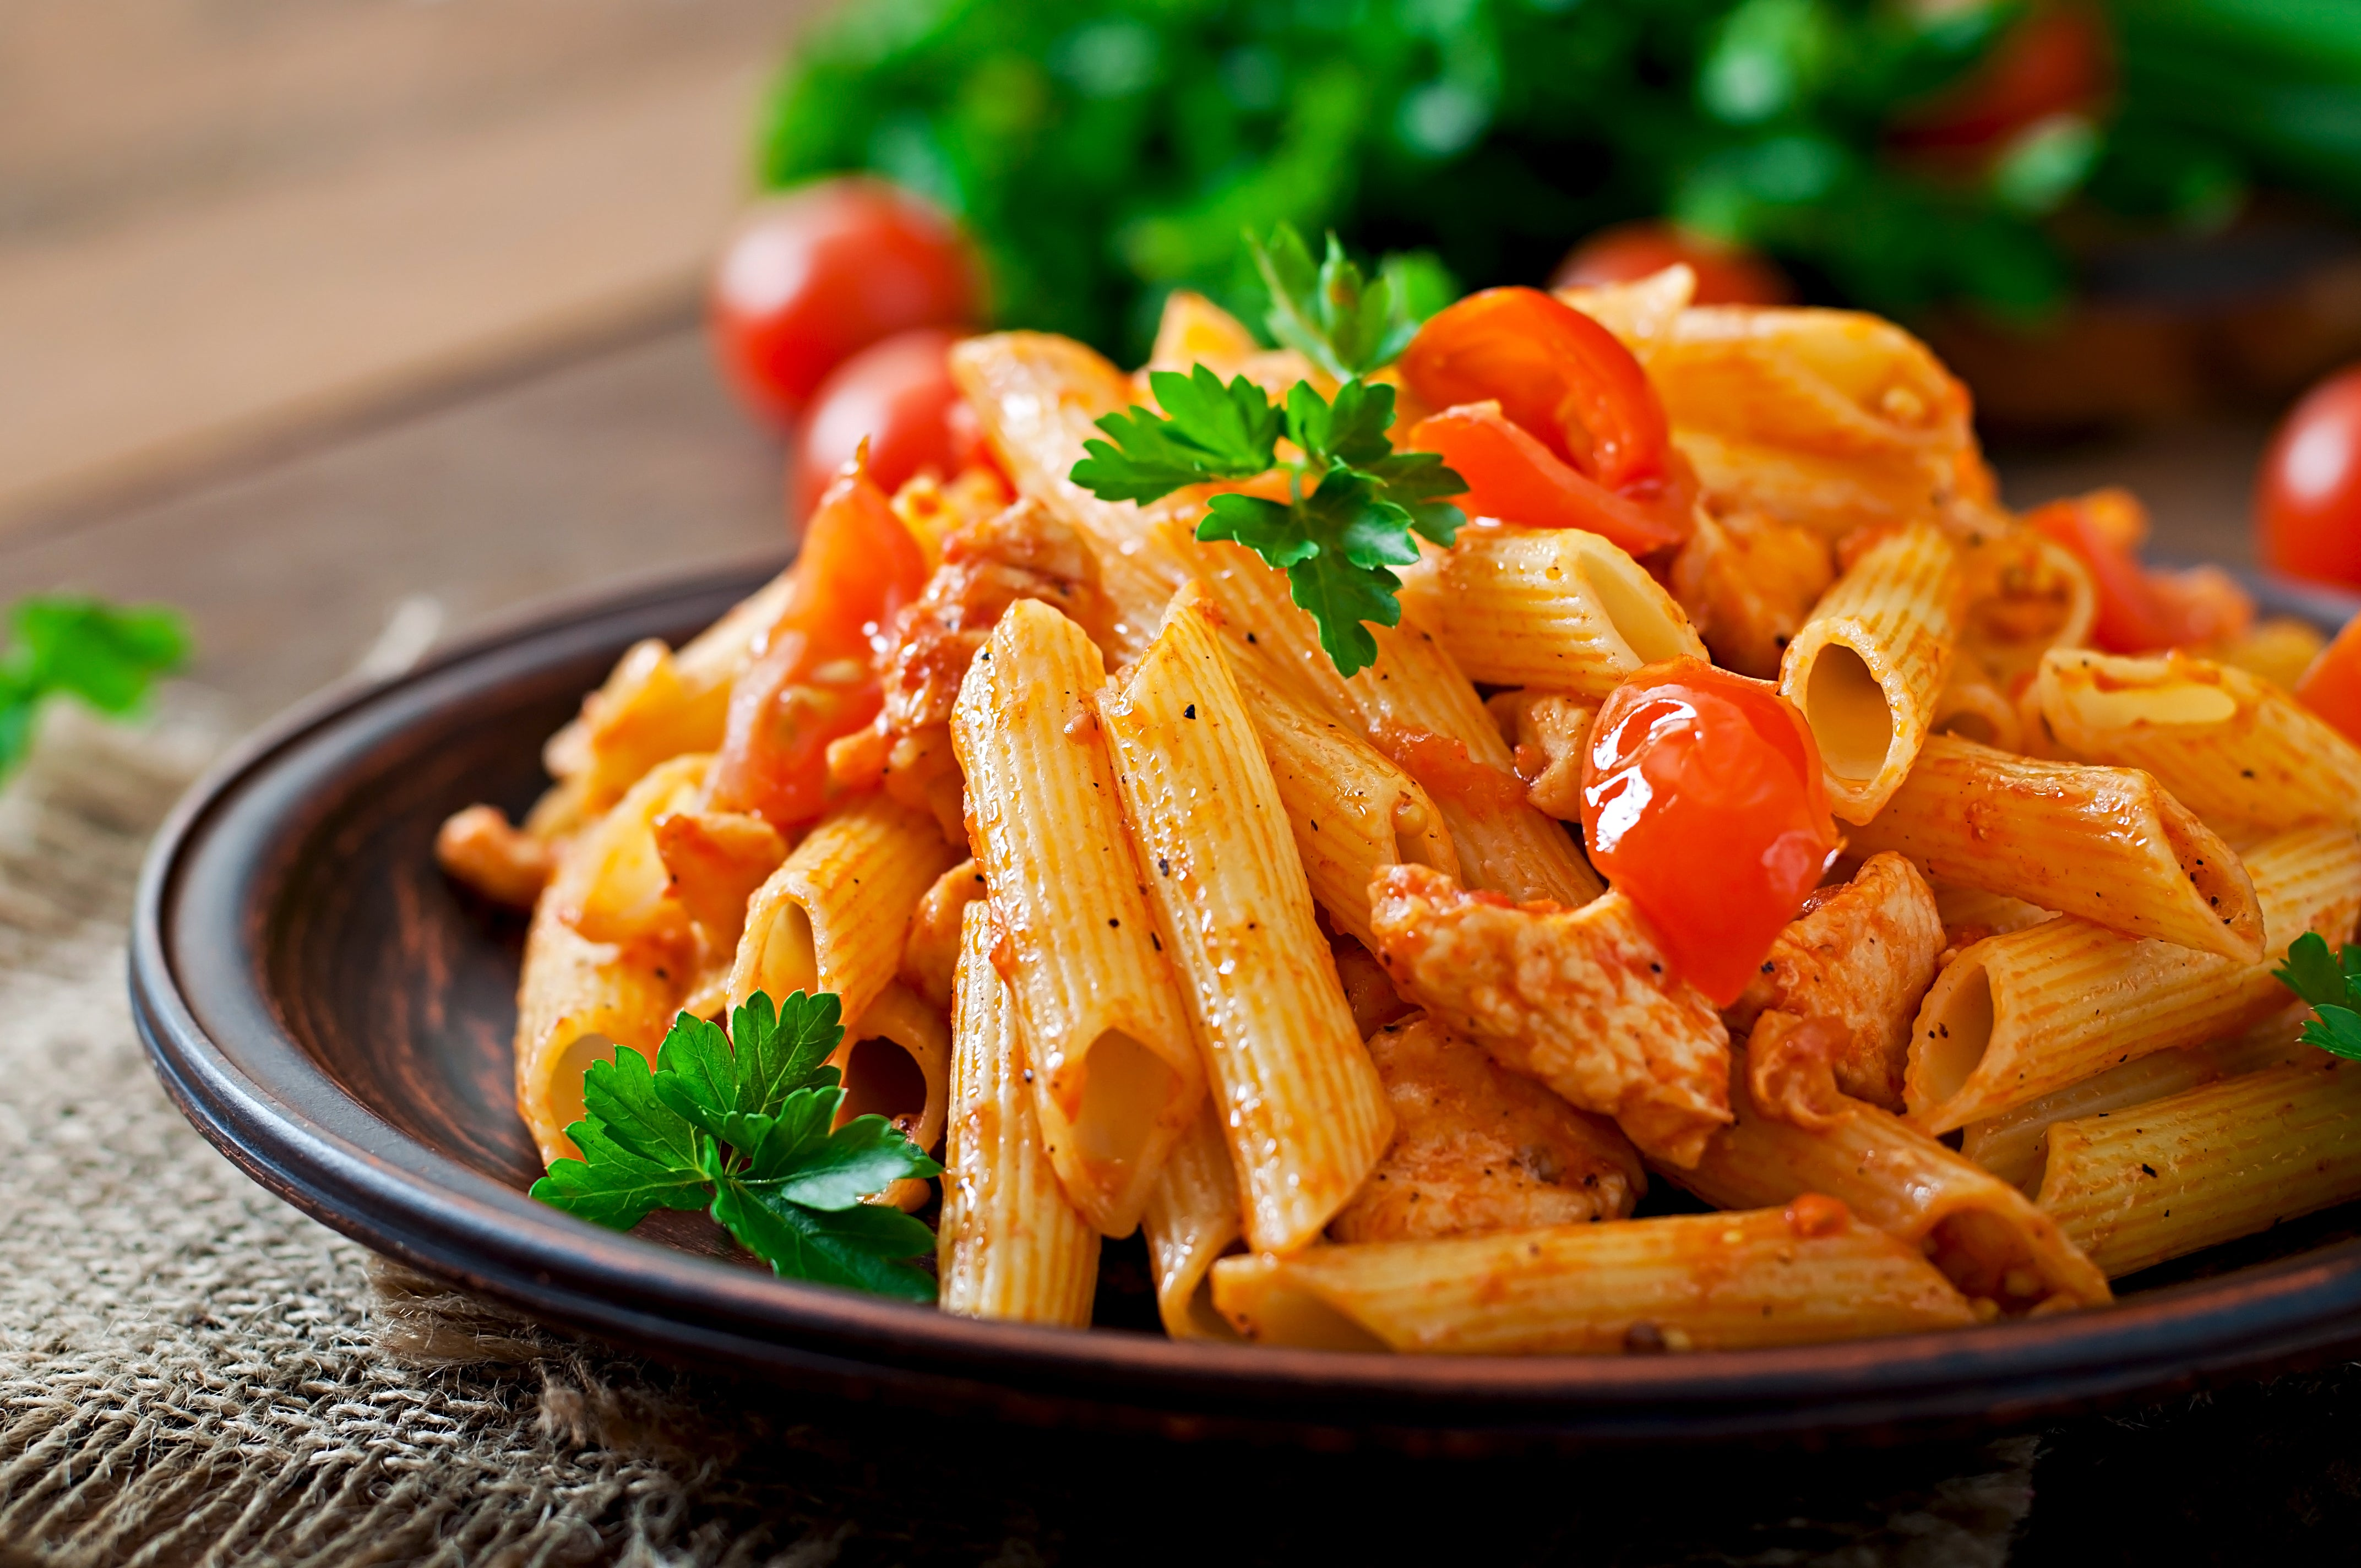 pasta and chicken in tomato sauce